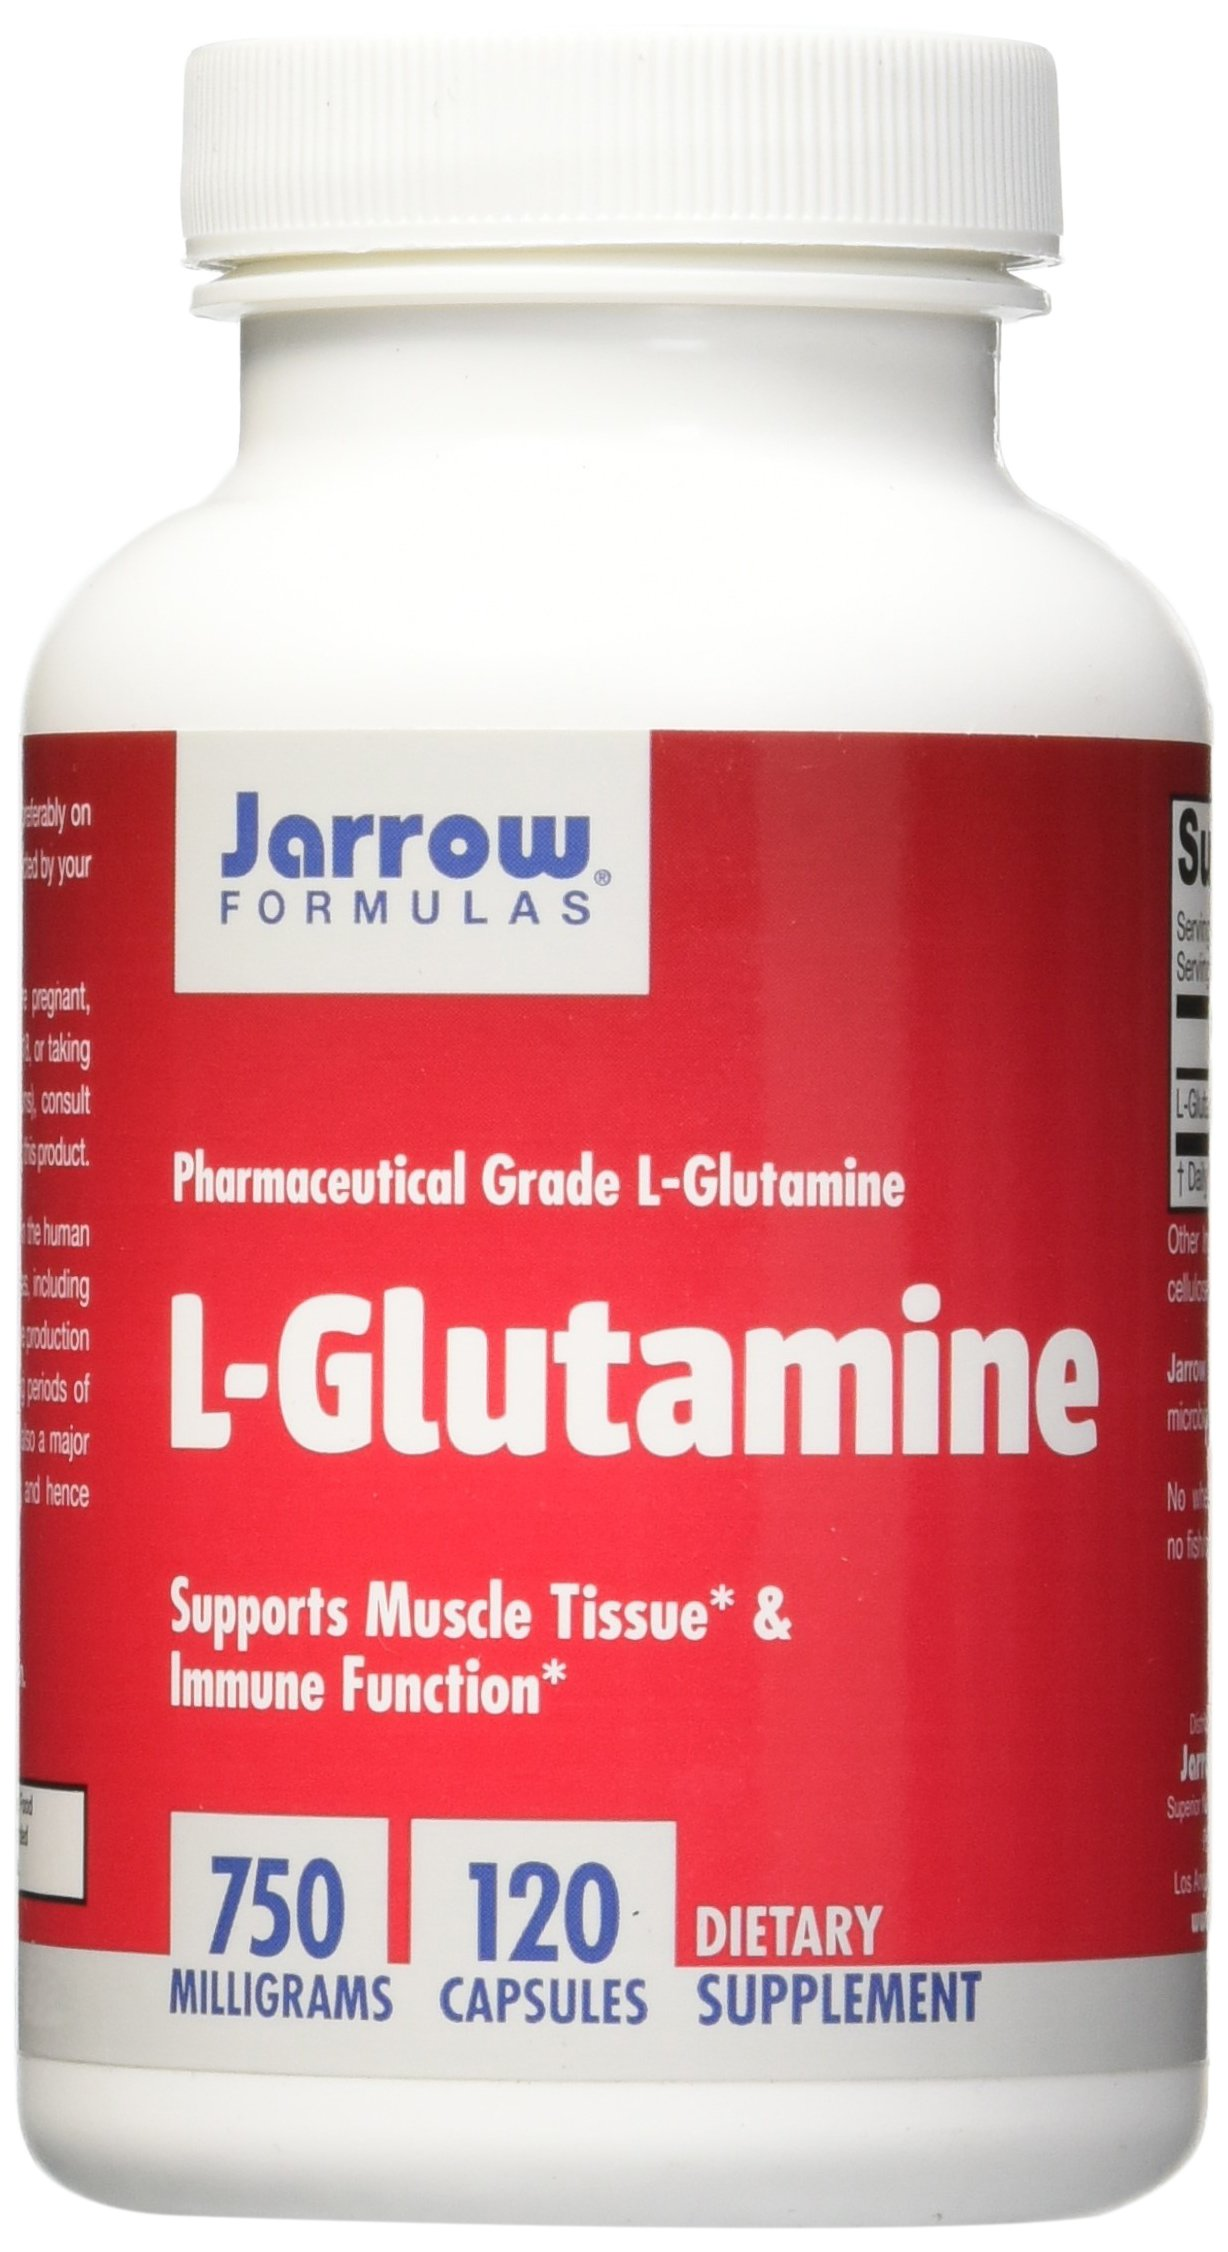 Jarrow Formulas L-Glutamine 750 mg, Supports Muscle Tissue & Immune Function, 120 Caps